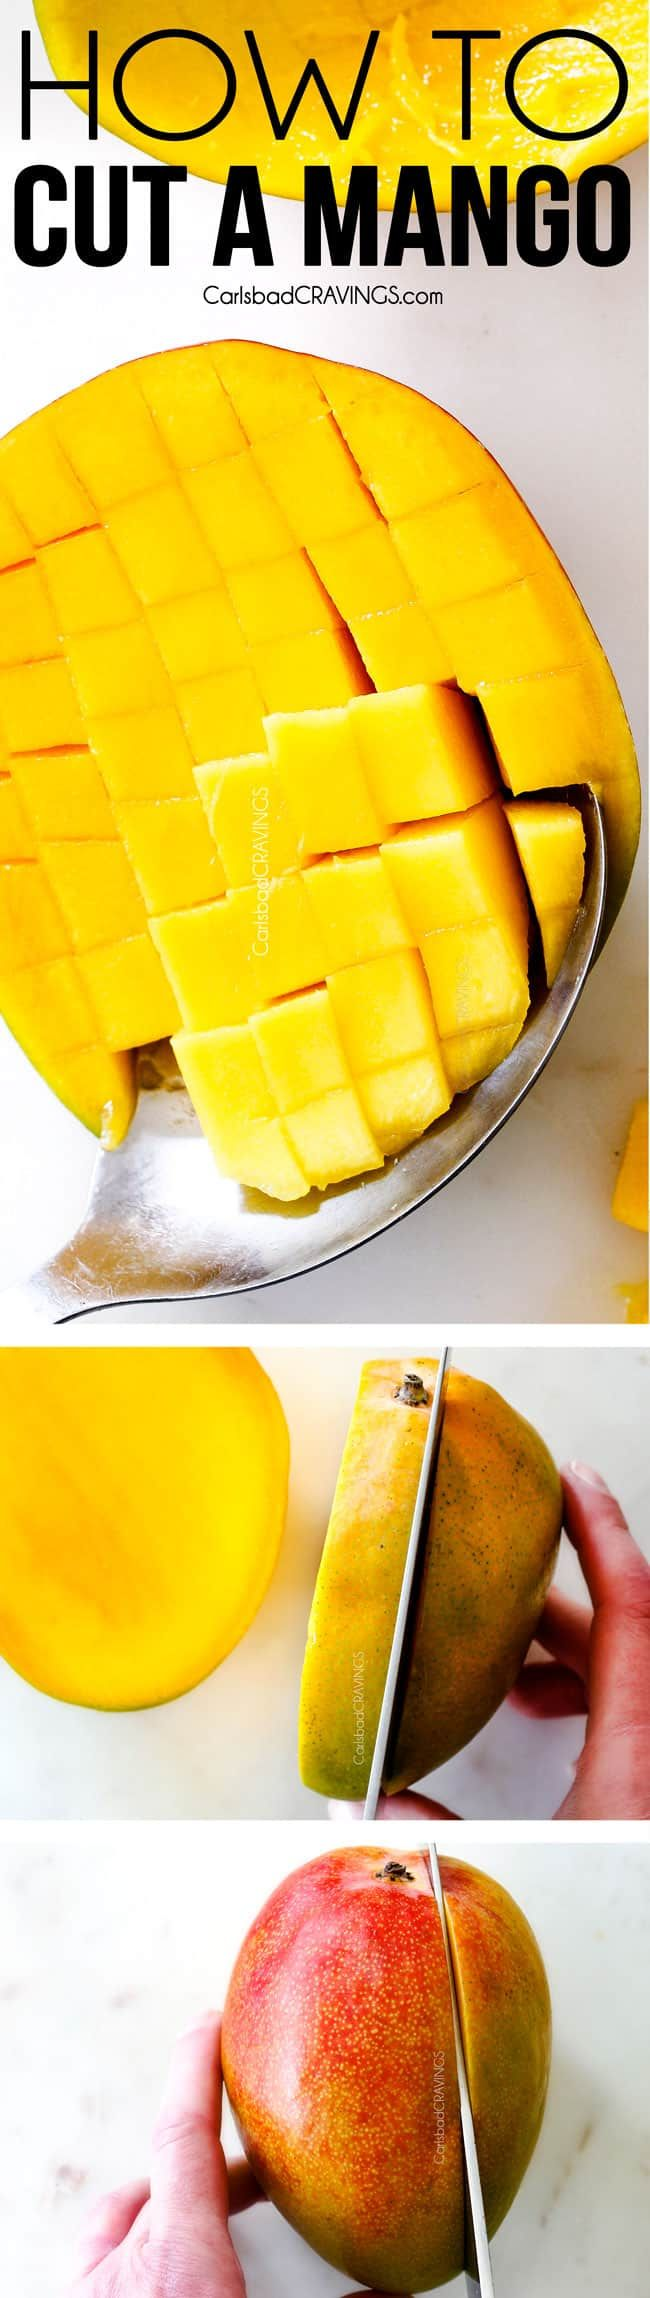 Learn How To cut A Mango like a pro!  And everything you ever wanted to know about How to Tell if a Mango is Ripe, How to Ripen Mangos, How to Store Mangos and Mango Nutrition! via @carlsbadcraving